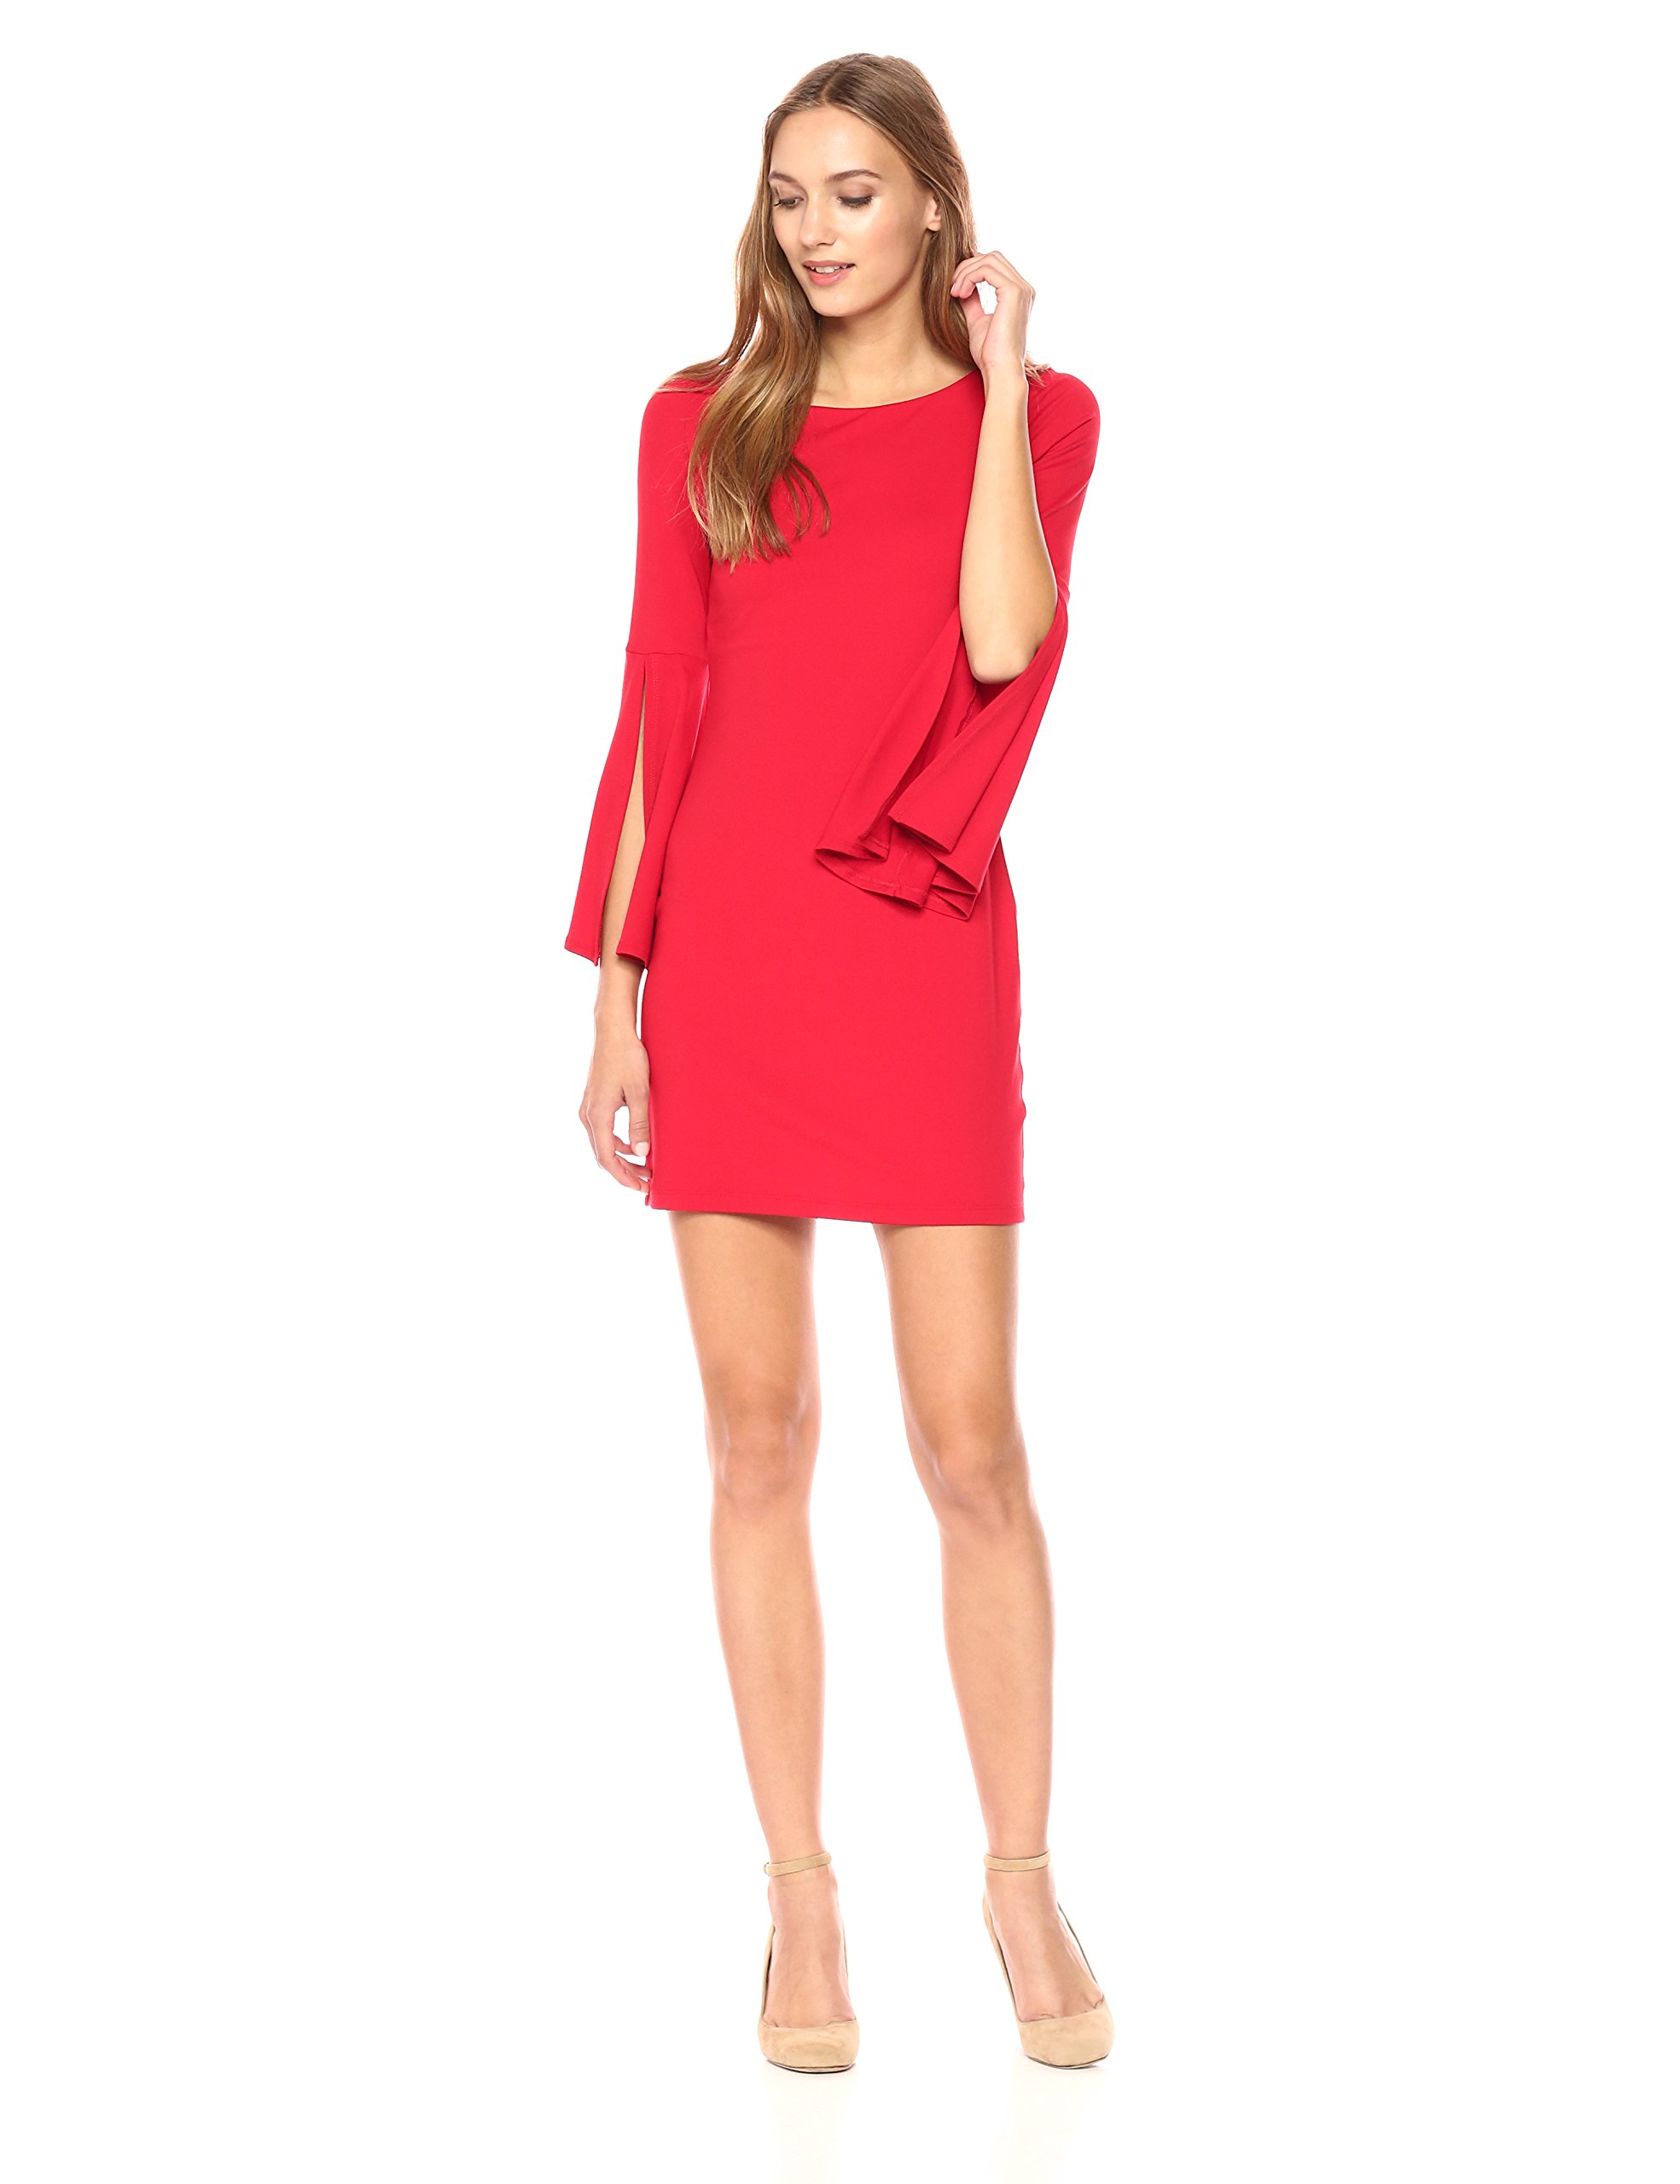 Susana Monaco Women's Arabella Long Sleeve Flare Cuffed Dress, Perfect Red, XL by Susana Monaco (Image #1)